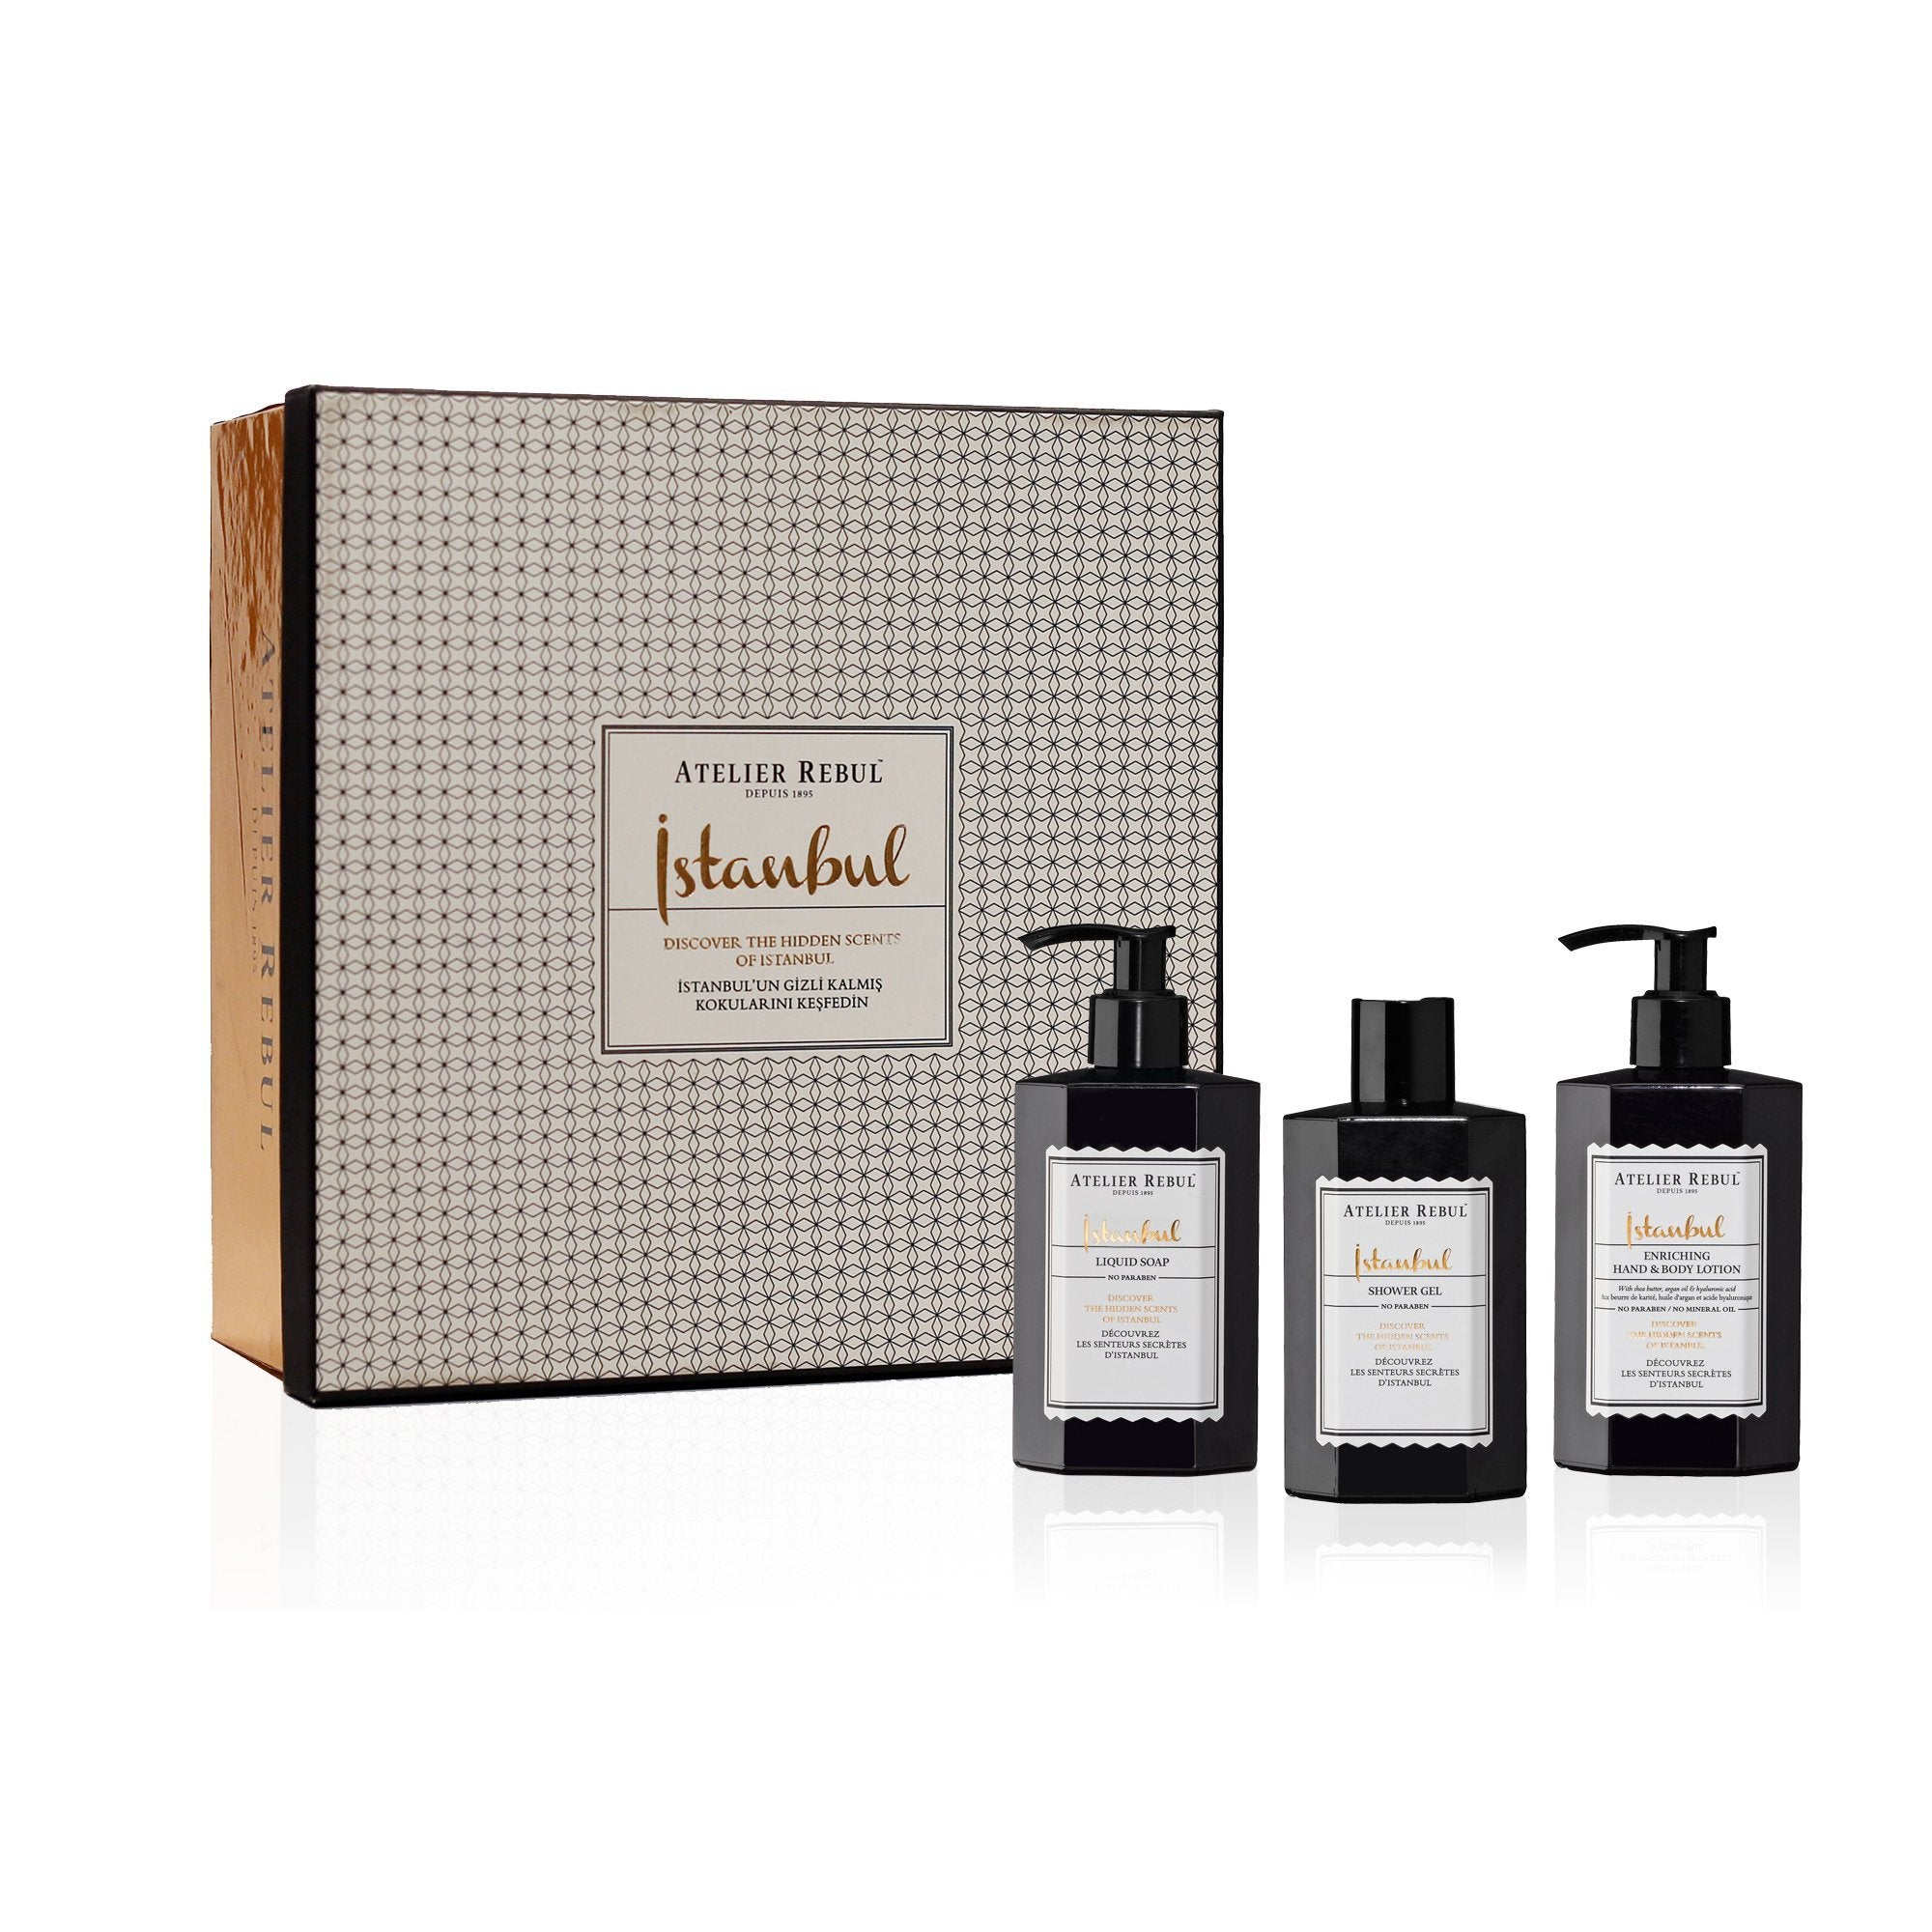 Istanbul Liquid Soap, Shower Gel and Hand & Body Lotion Giftset - Atelier Rebul